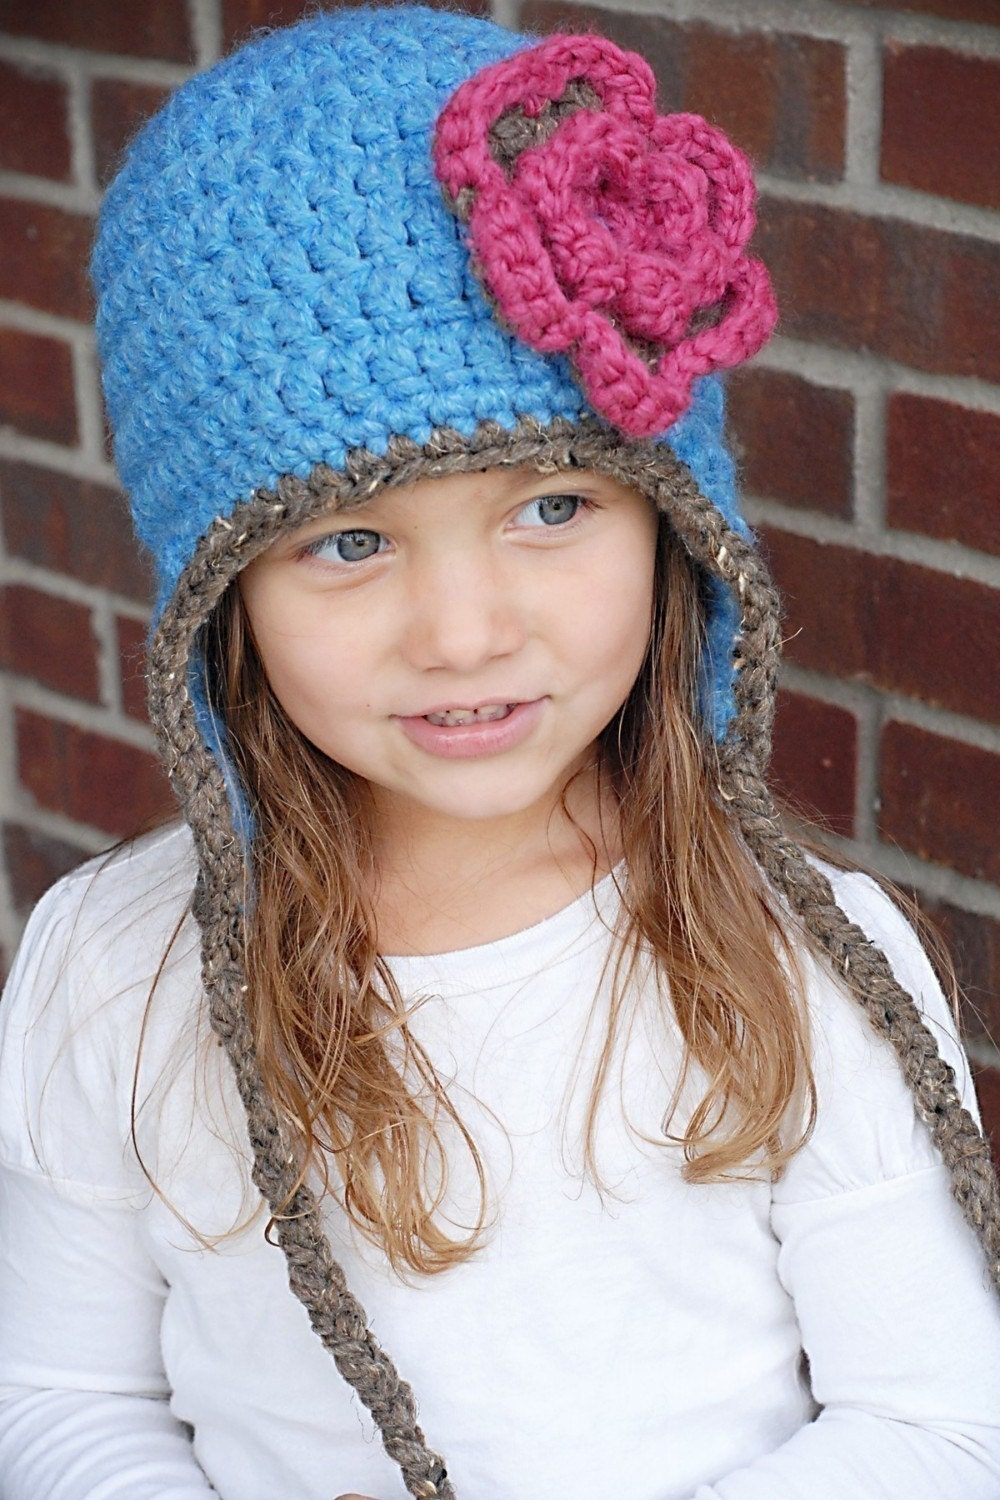 These earflap hats help you look stylish while keeping your ears protected and toasty. A wide variety of styles include chullos, ski bonnets, aviator, and some just for fun. To get the knitting patterns, scroll down the page to the individual pattern you want and click on the link to that pattern.